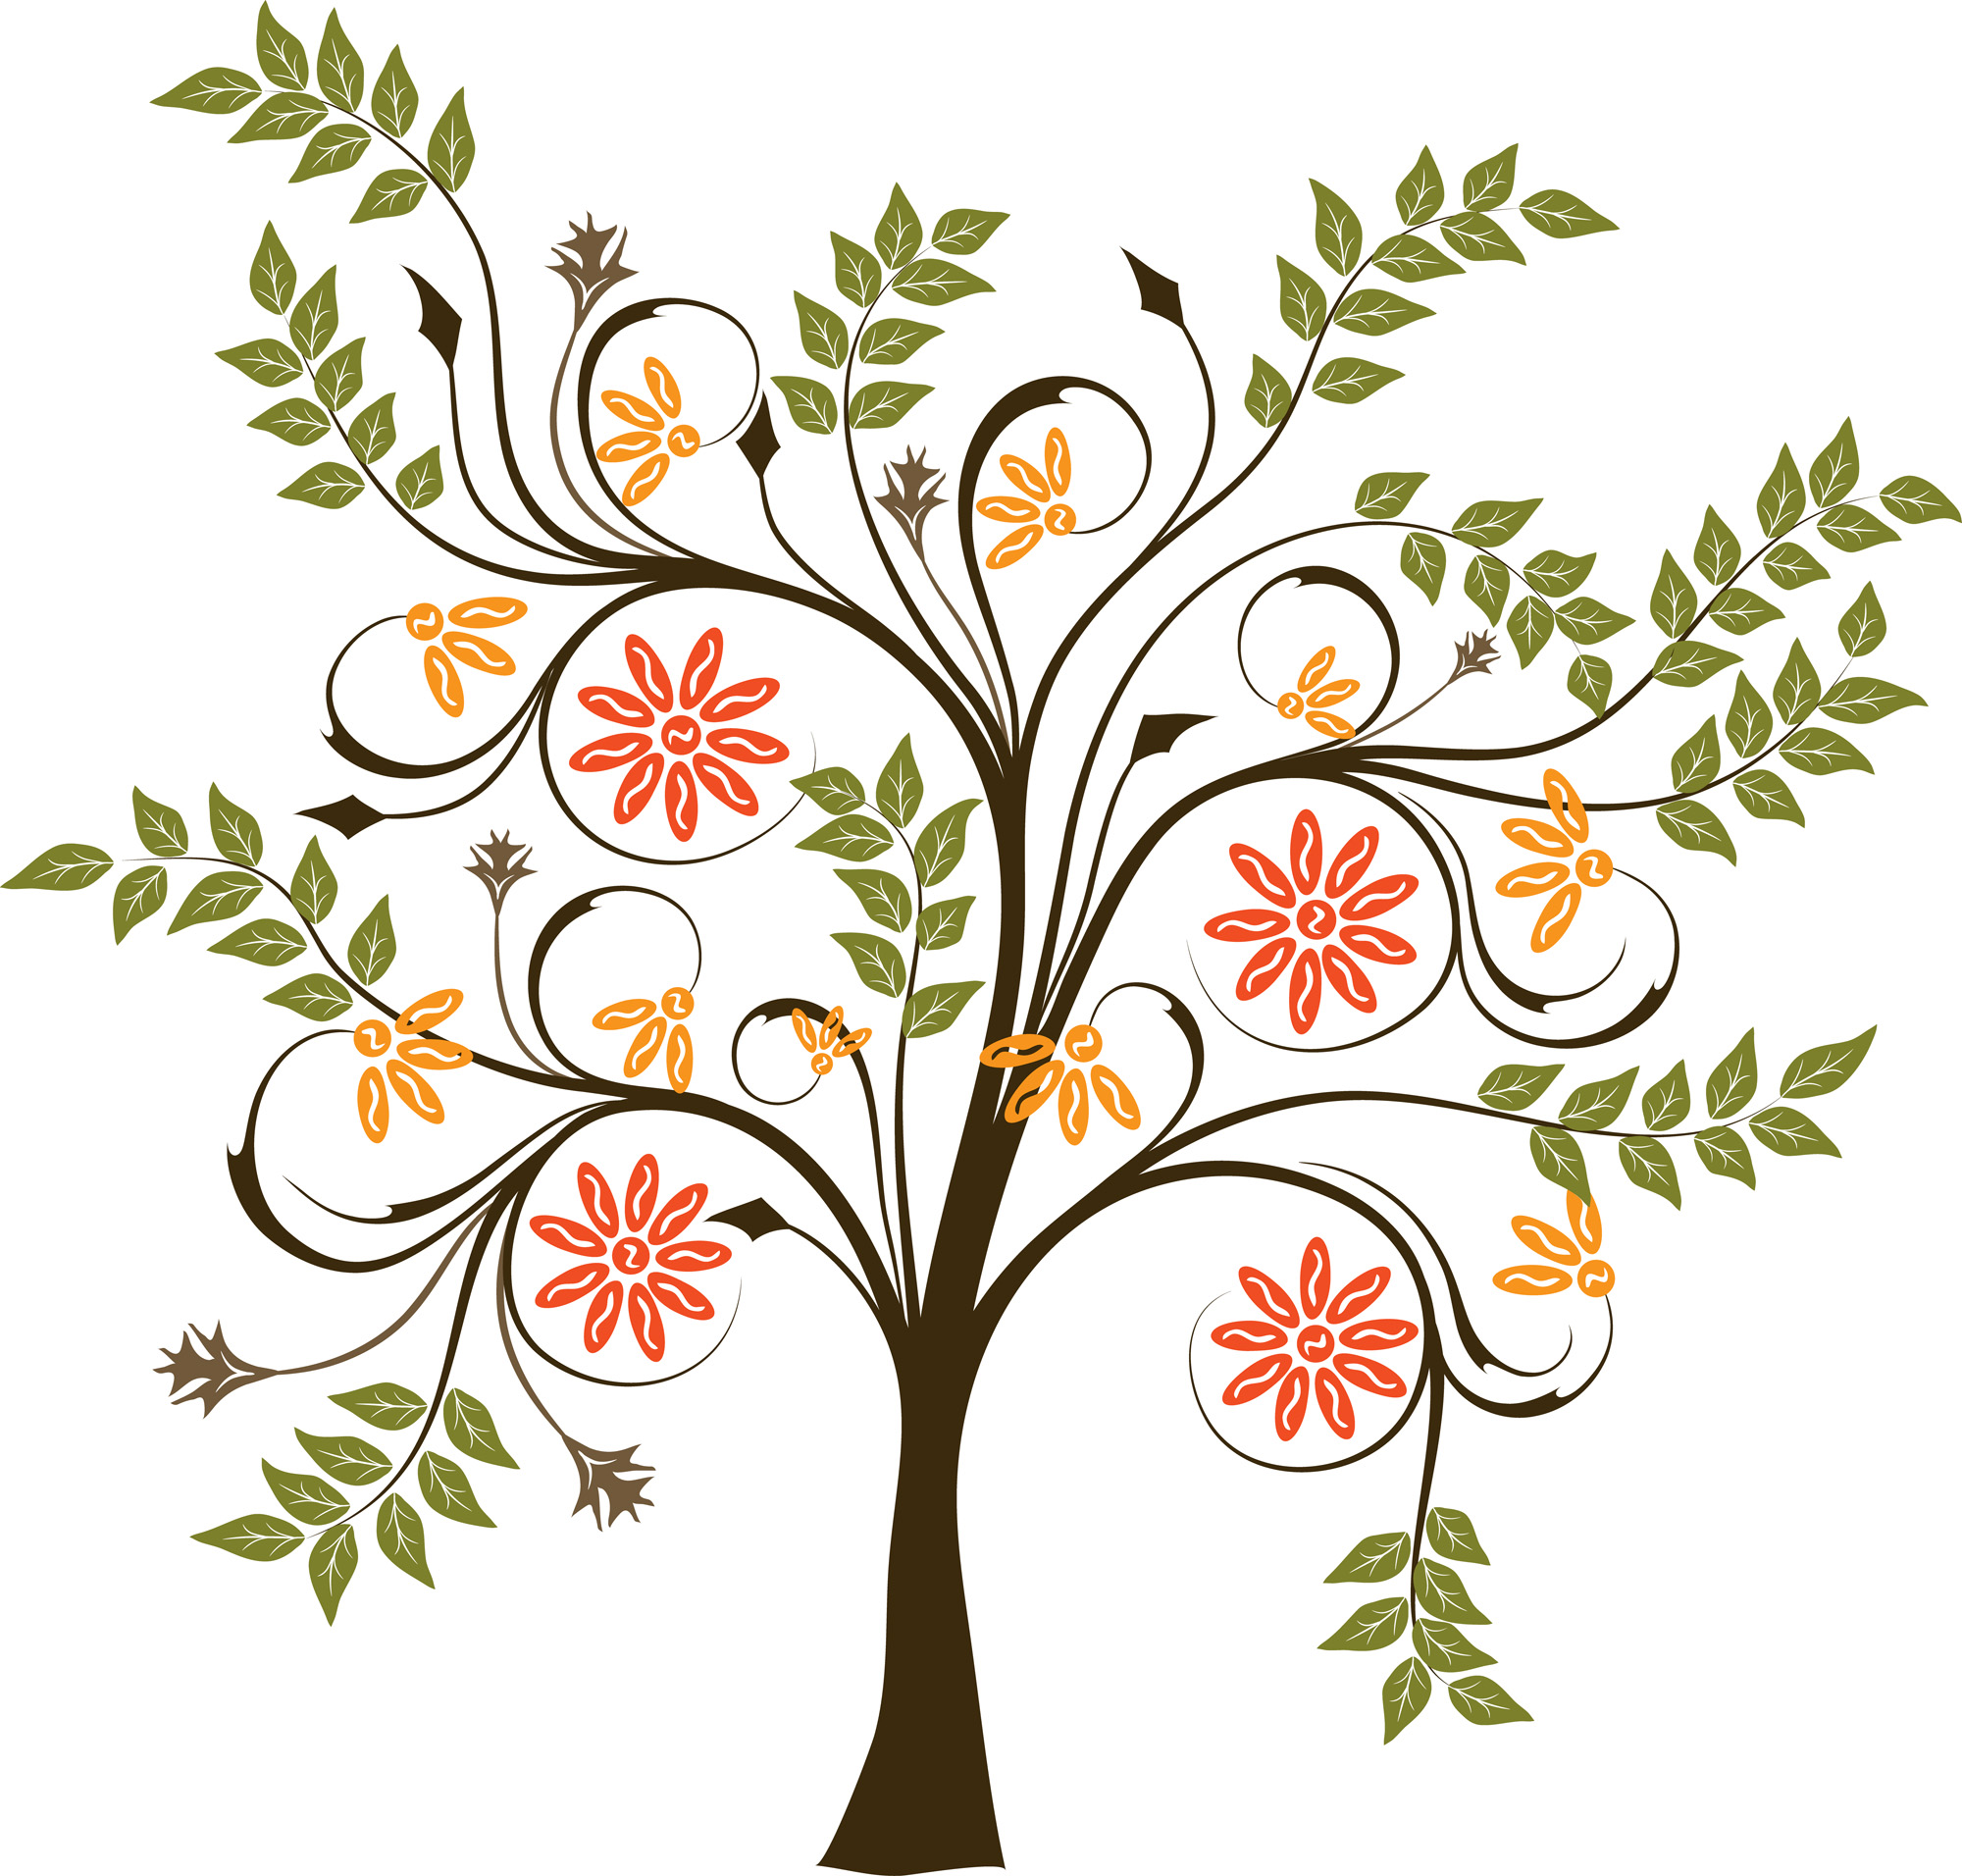 20 Tree Design Vector Images